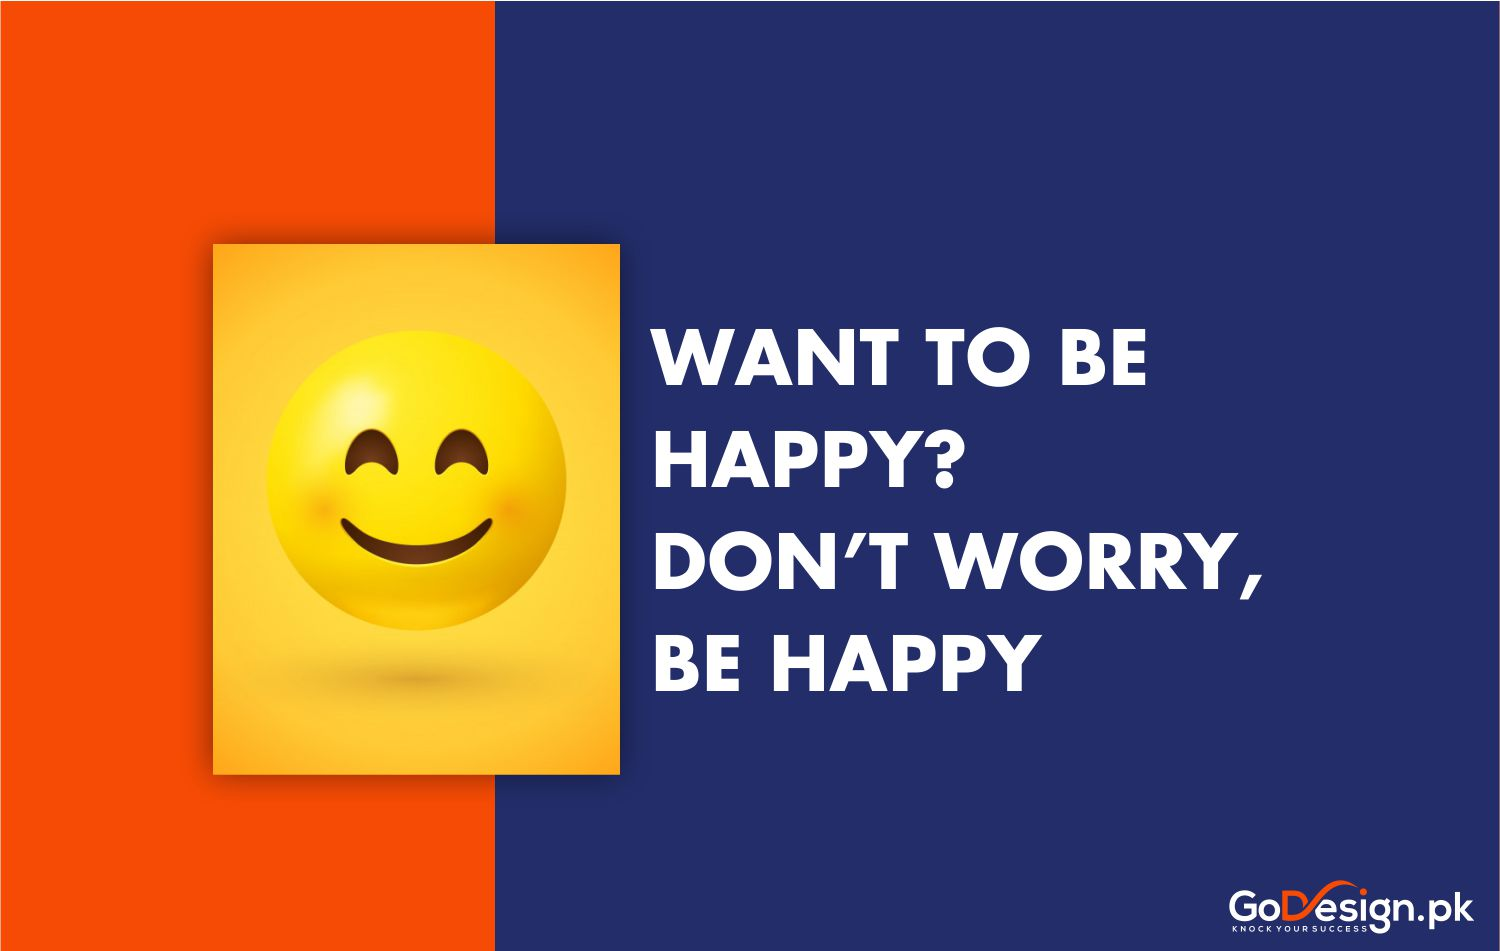 Want to be happy, dont worry be happy